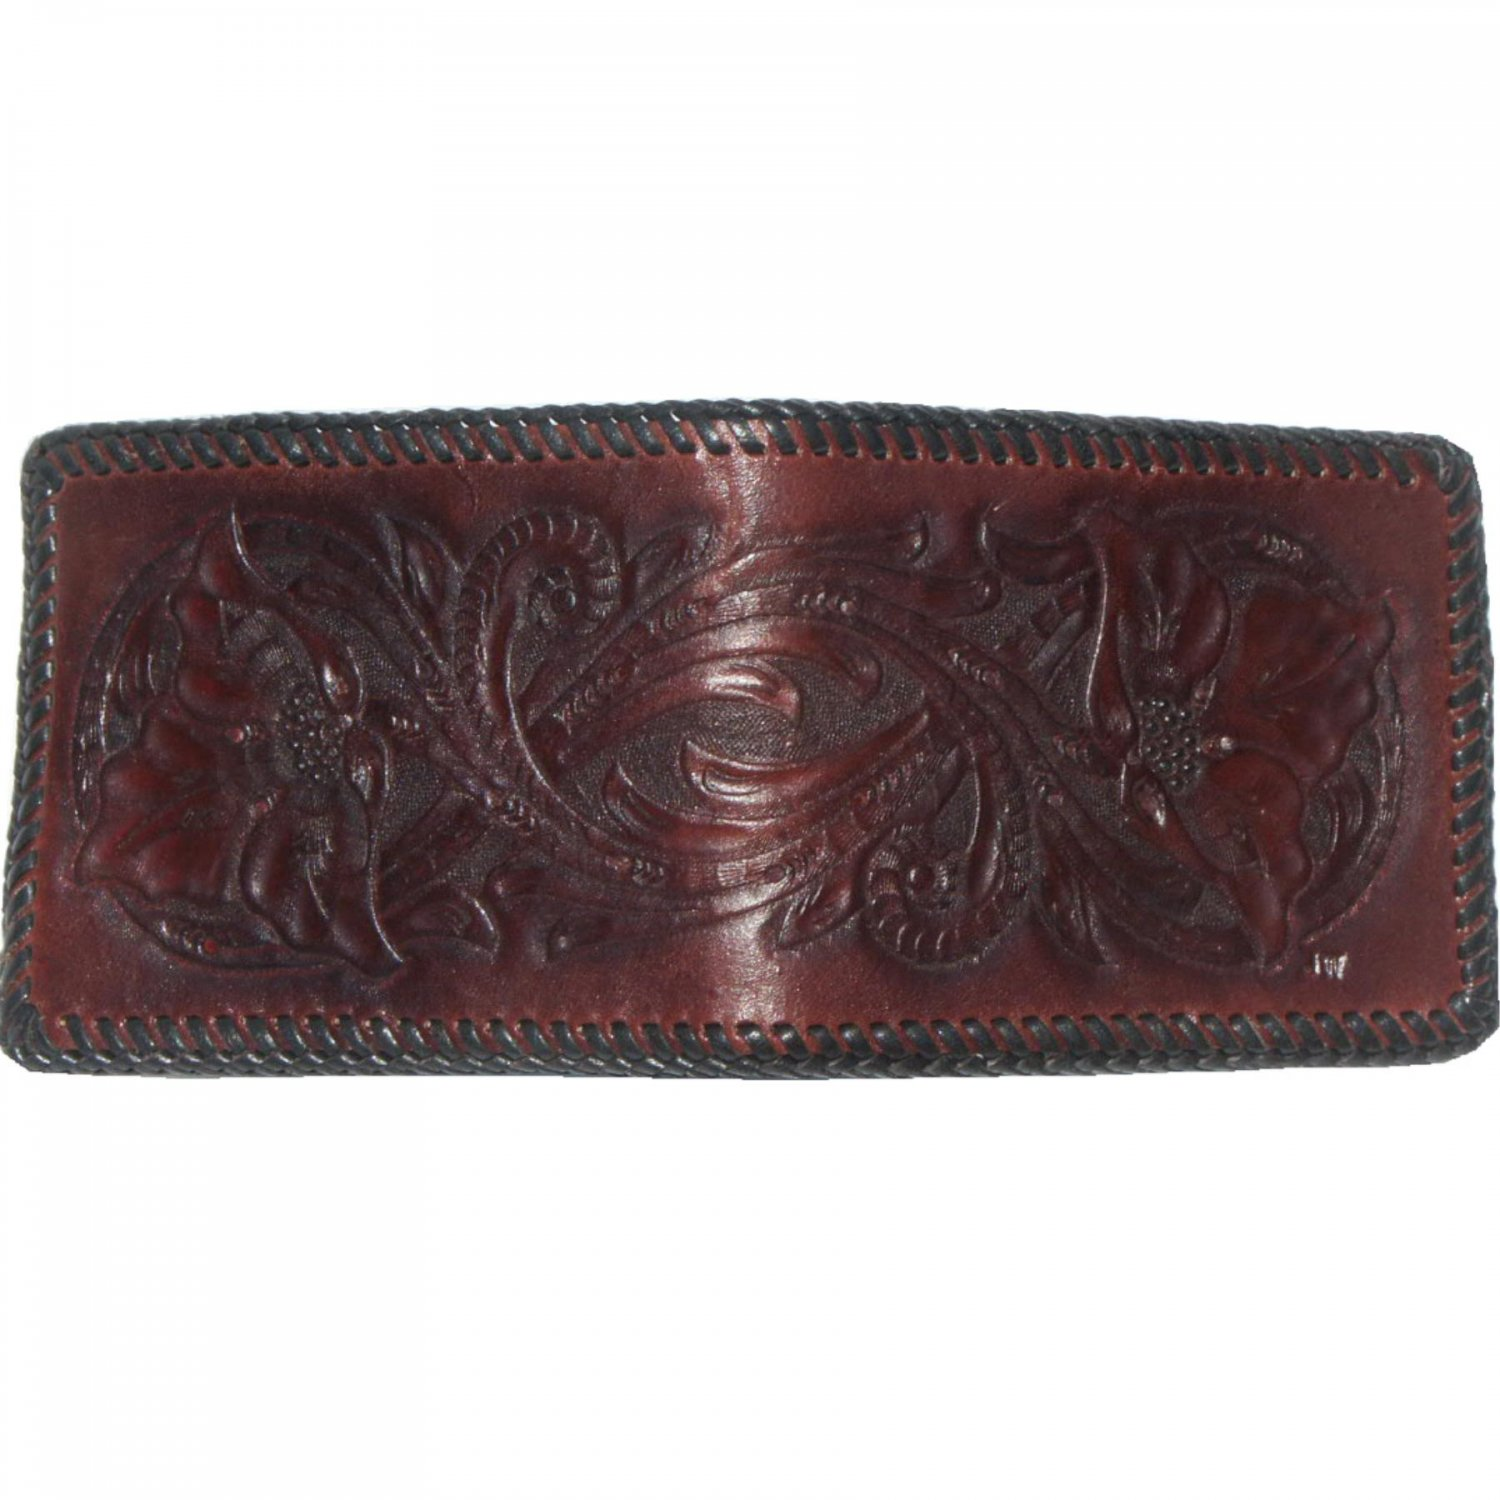 Men's Deluxe Wallet, Dark Mahogany Finish, Black Lacing, Handtooled Leather W0003.1